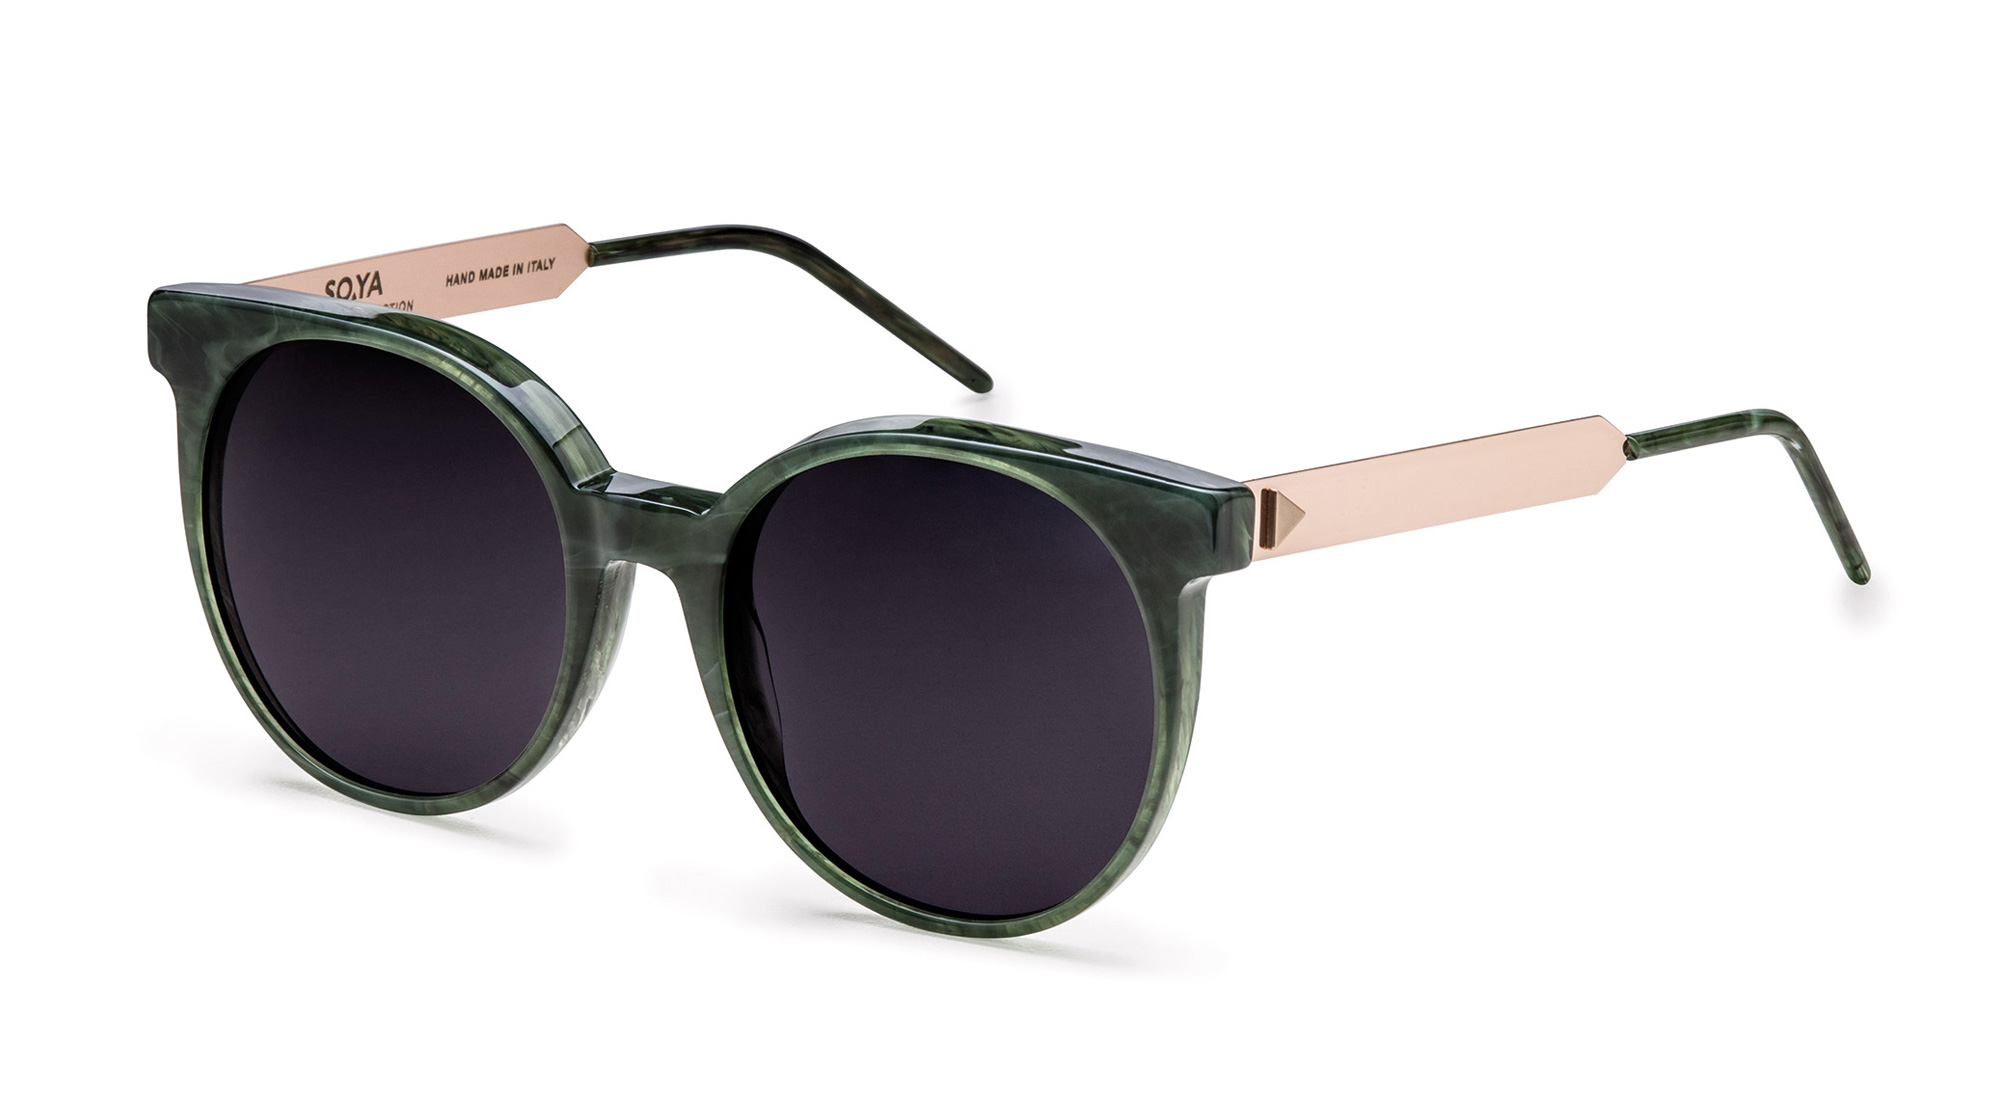 JULIETTE_Eyewear_SOYA_GreenMarble_3-4View